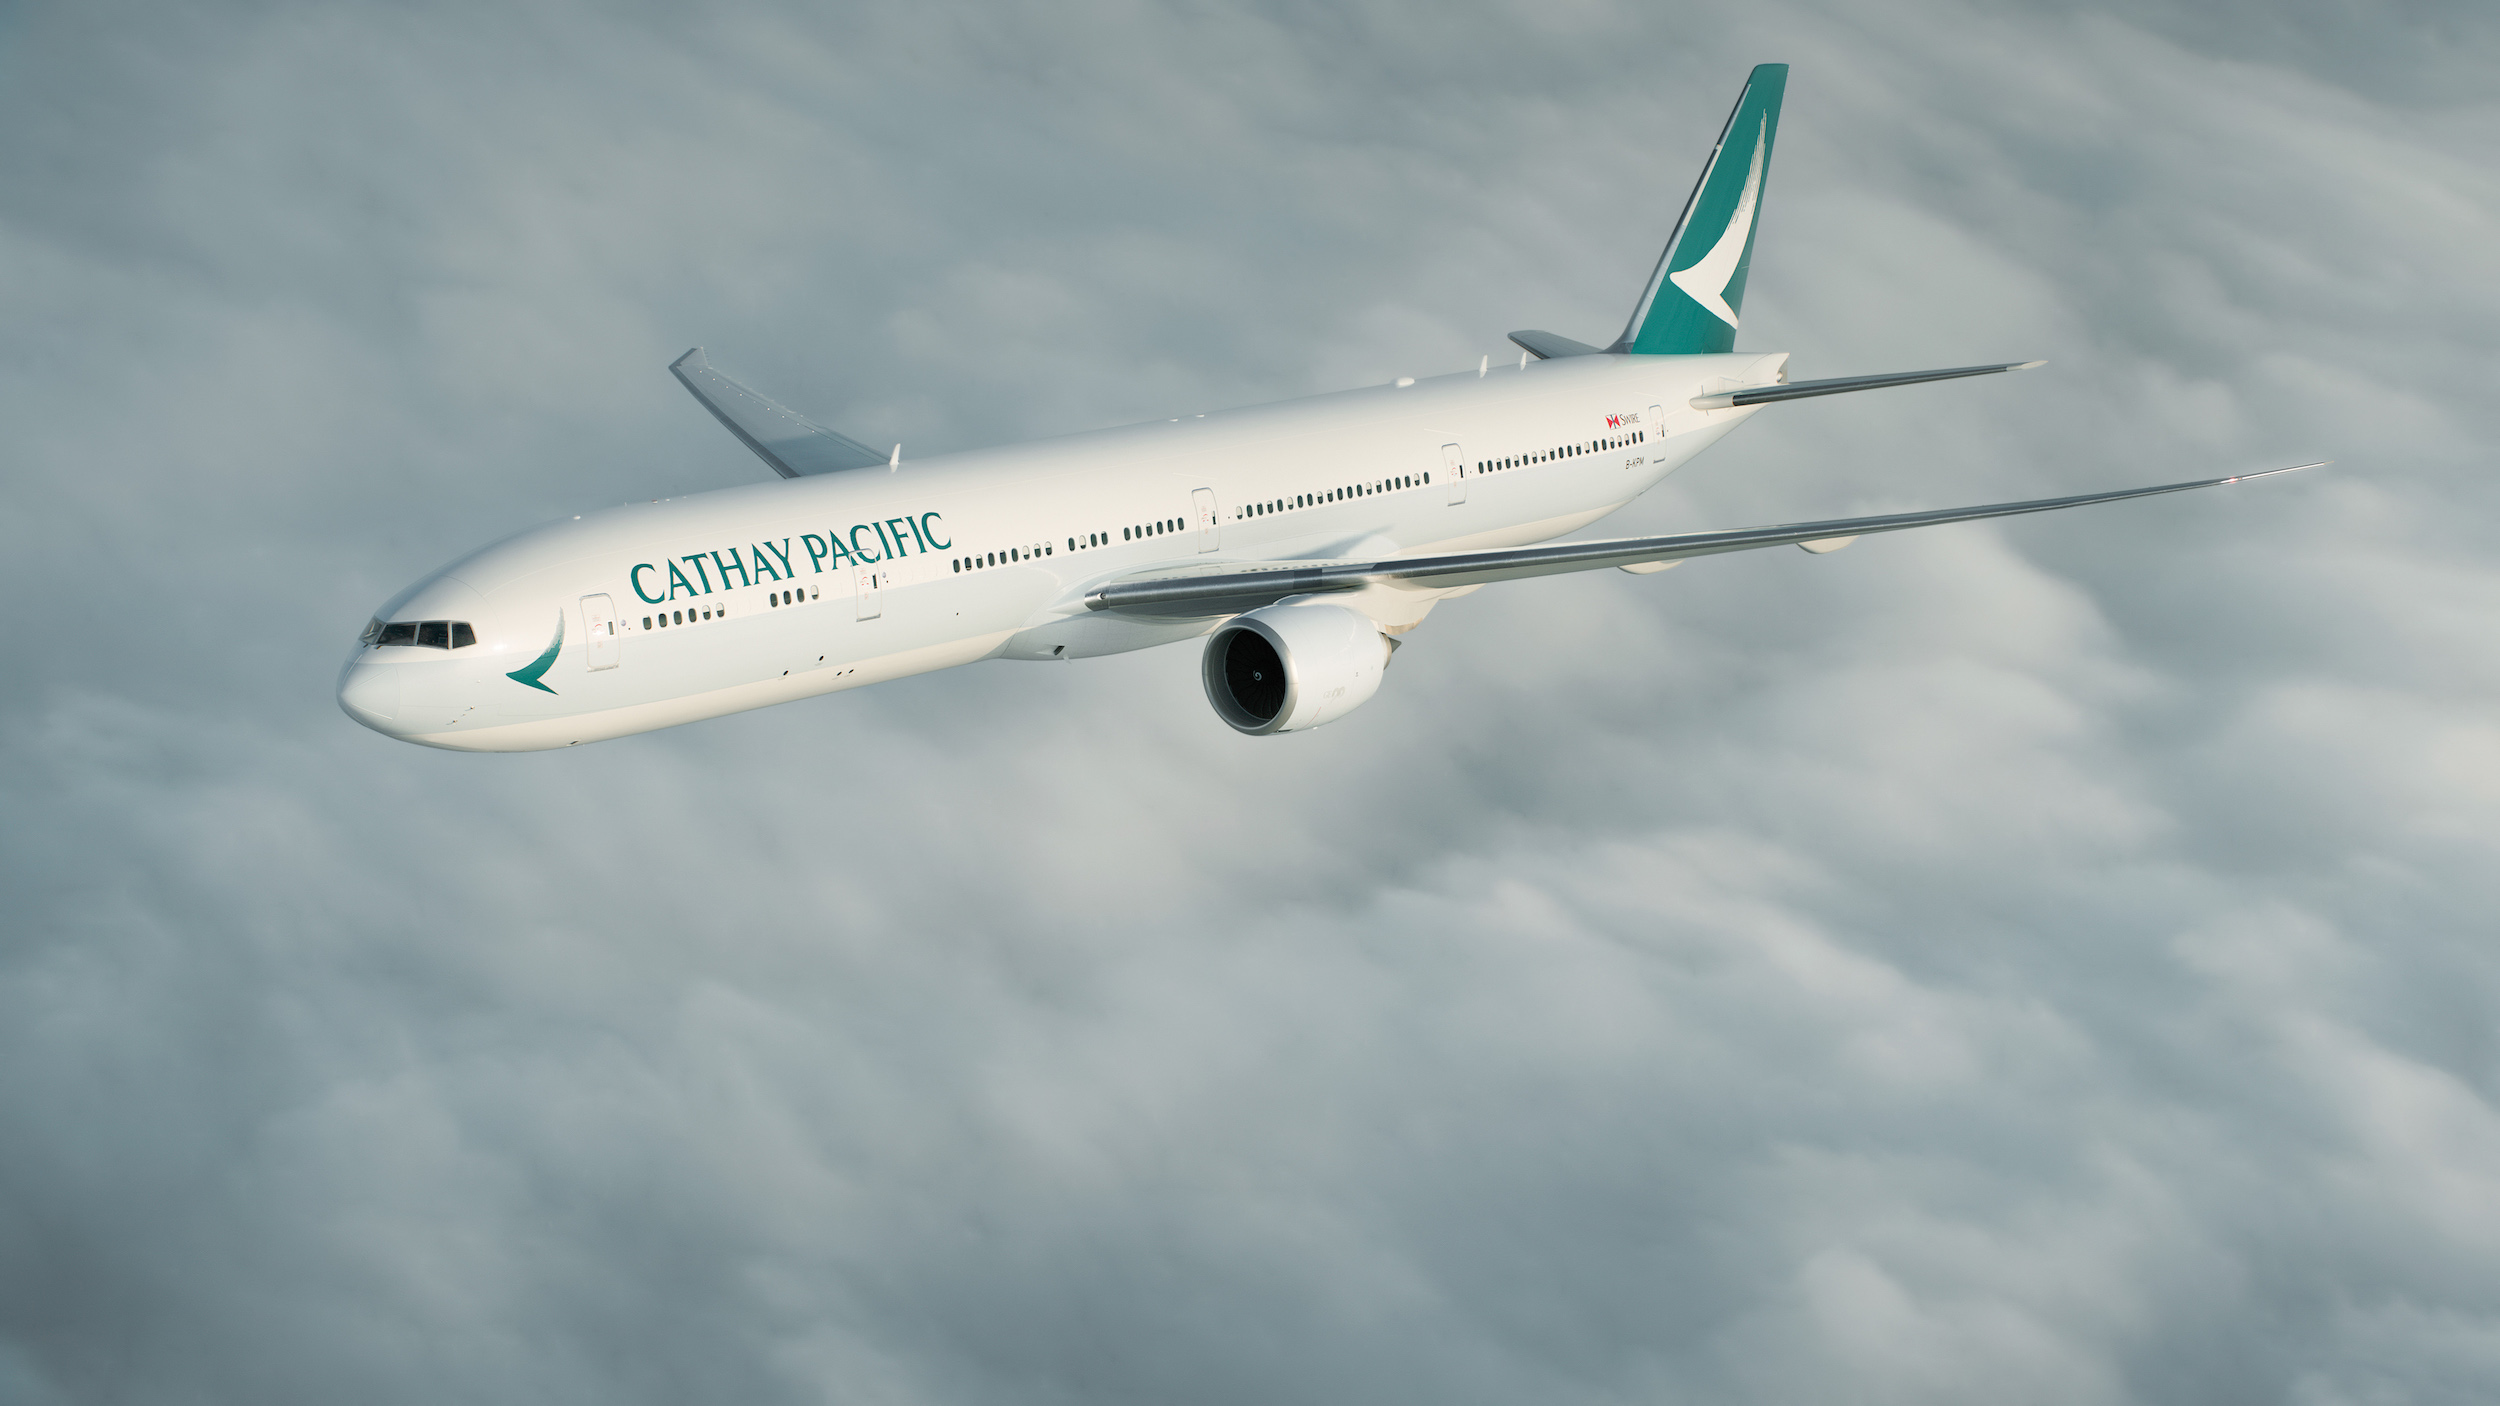 CX B77W 2 (Cathay Pacific).jpg